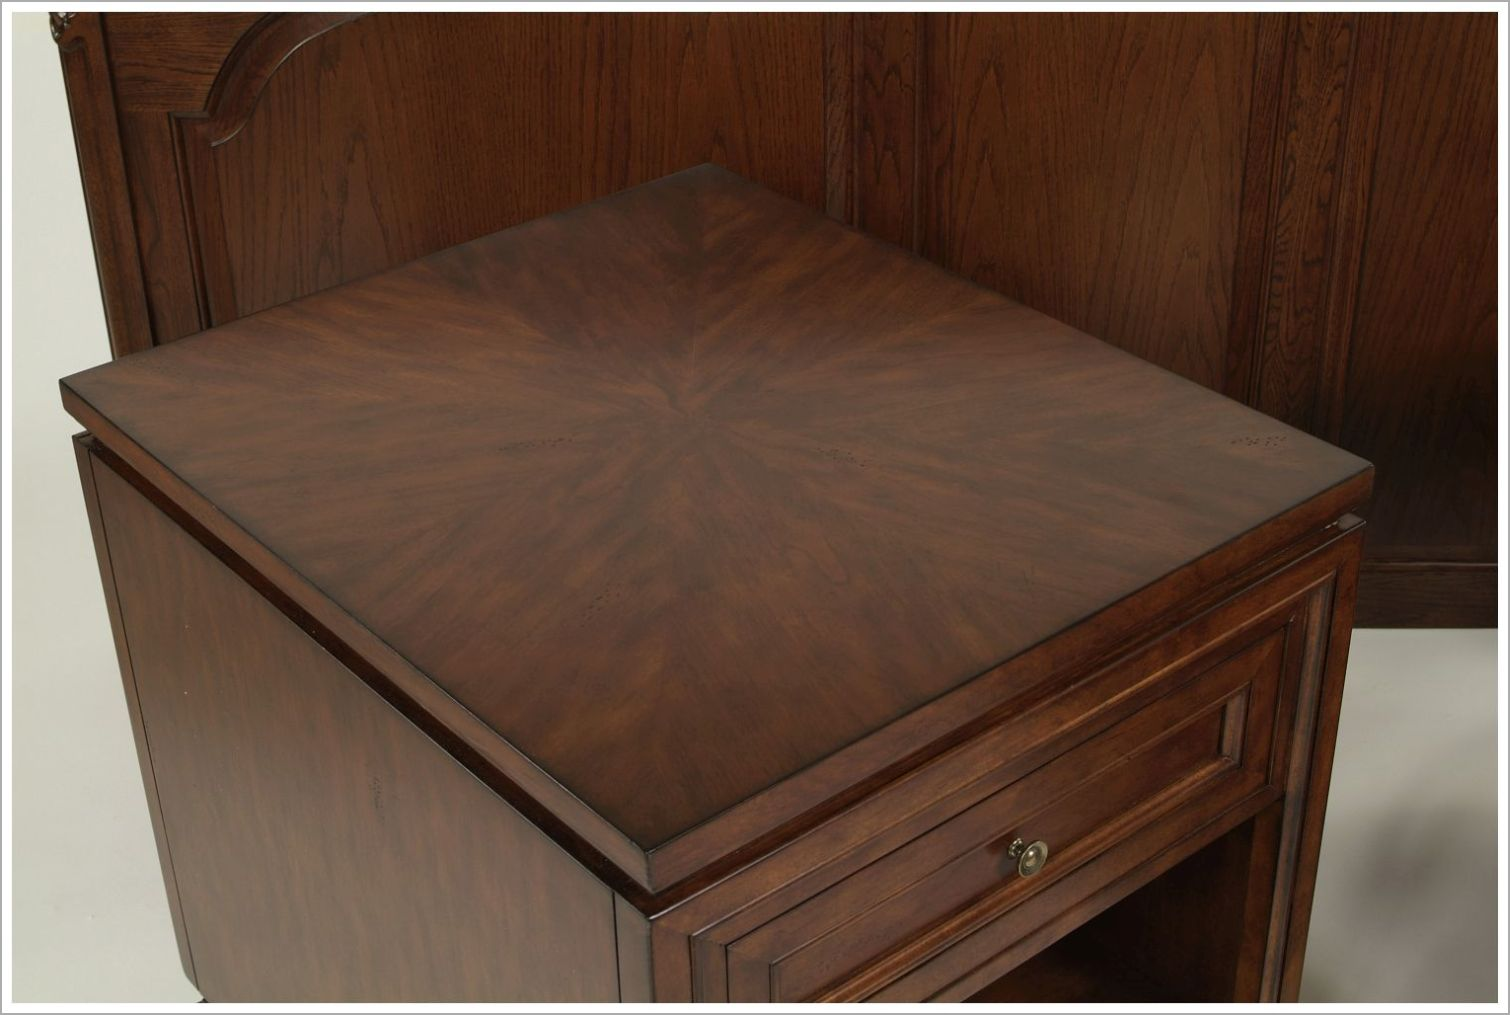 Custom Hotel Nightstand with Intricate Veneer Pattern